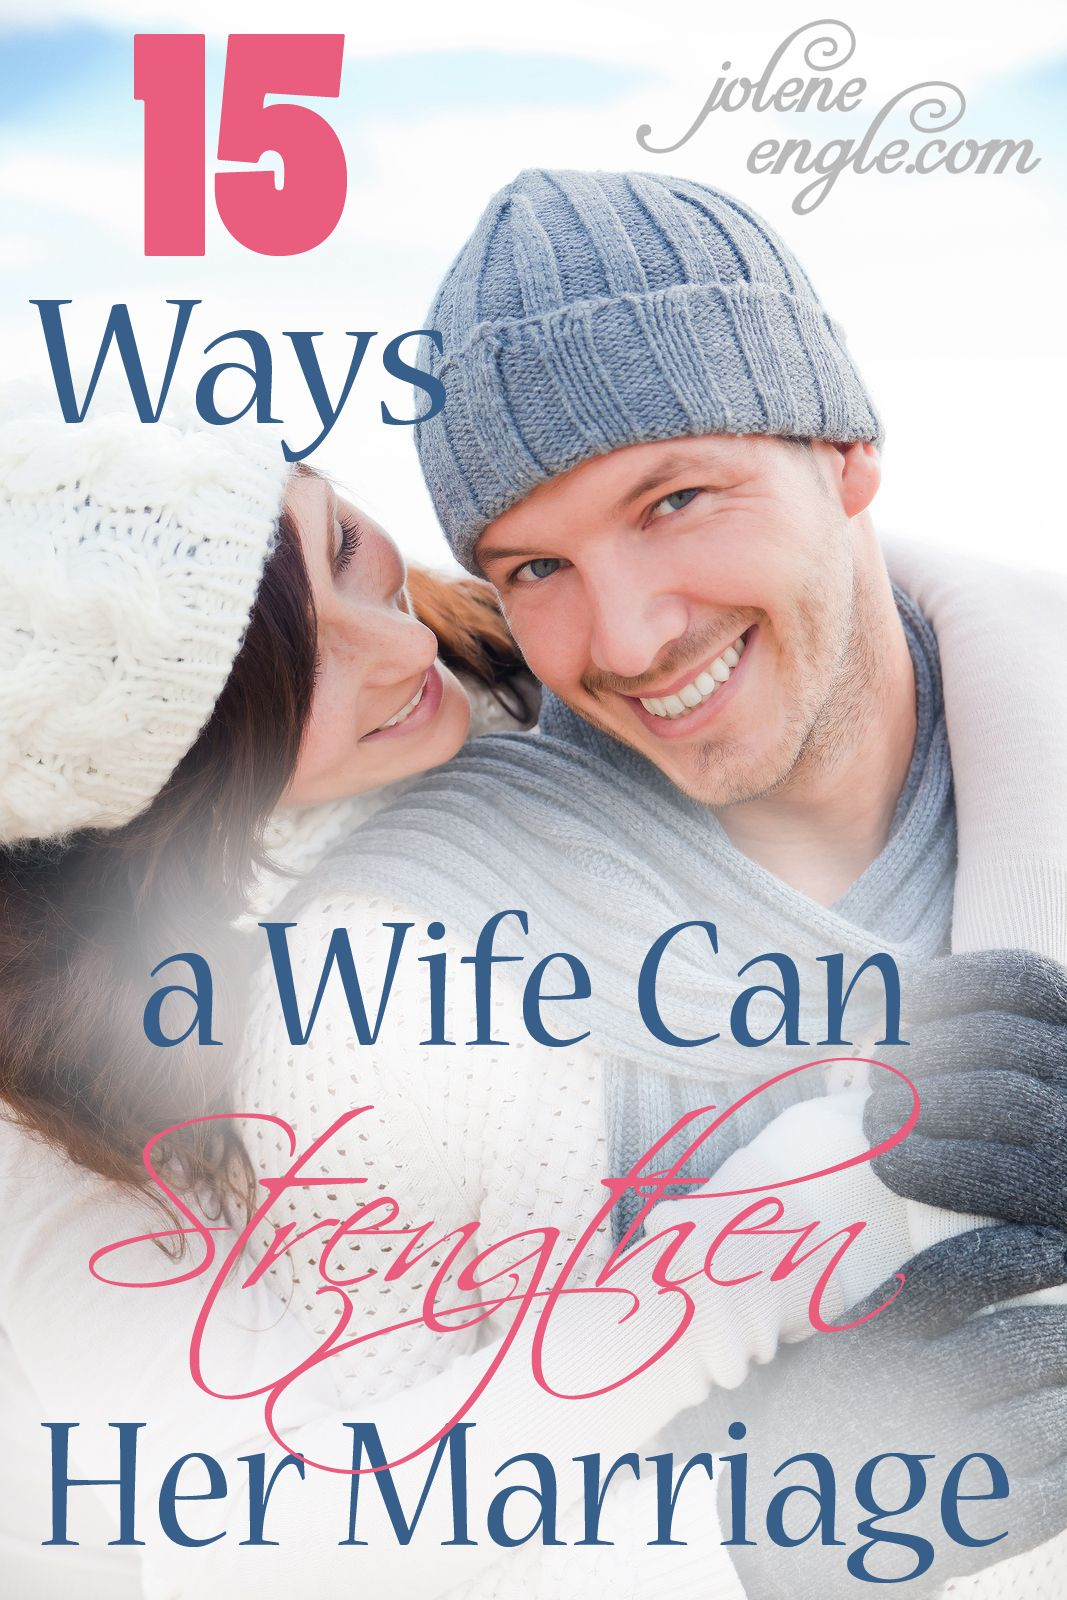 strengthen relationship with wife